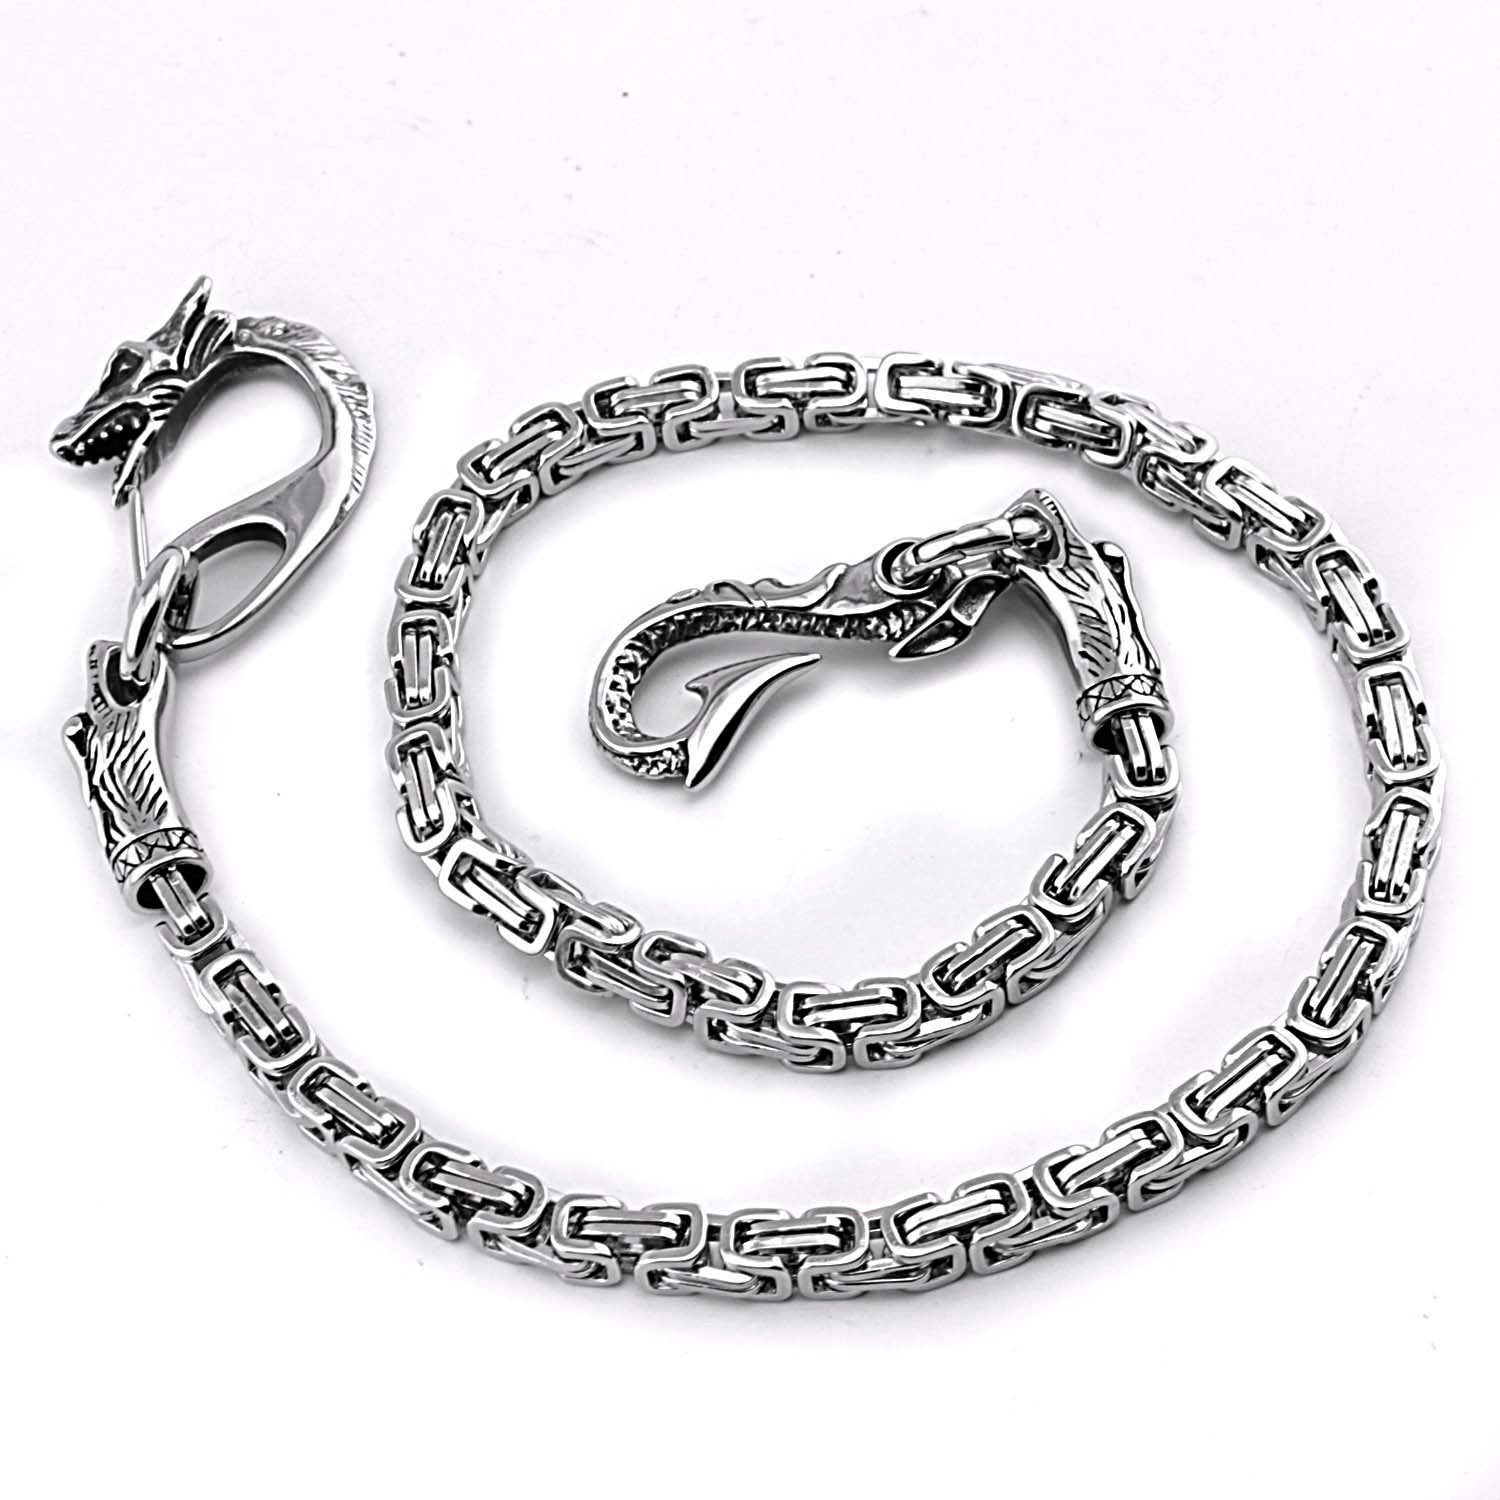 Cool Silver Dragon Stainless Steel Wallet CHain Long Biker Wallet CHain jeans chain jean chain For Men